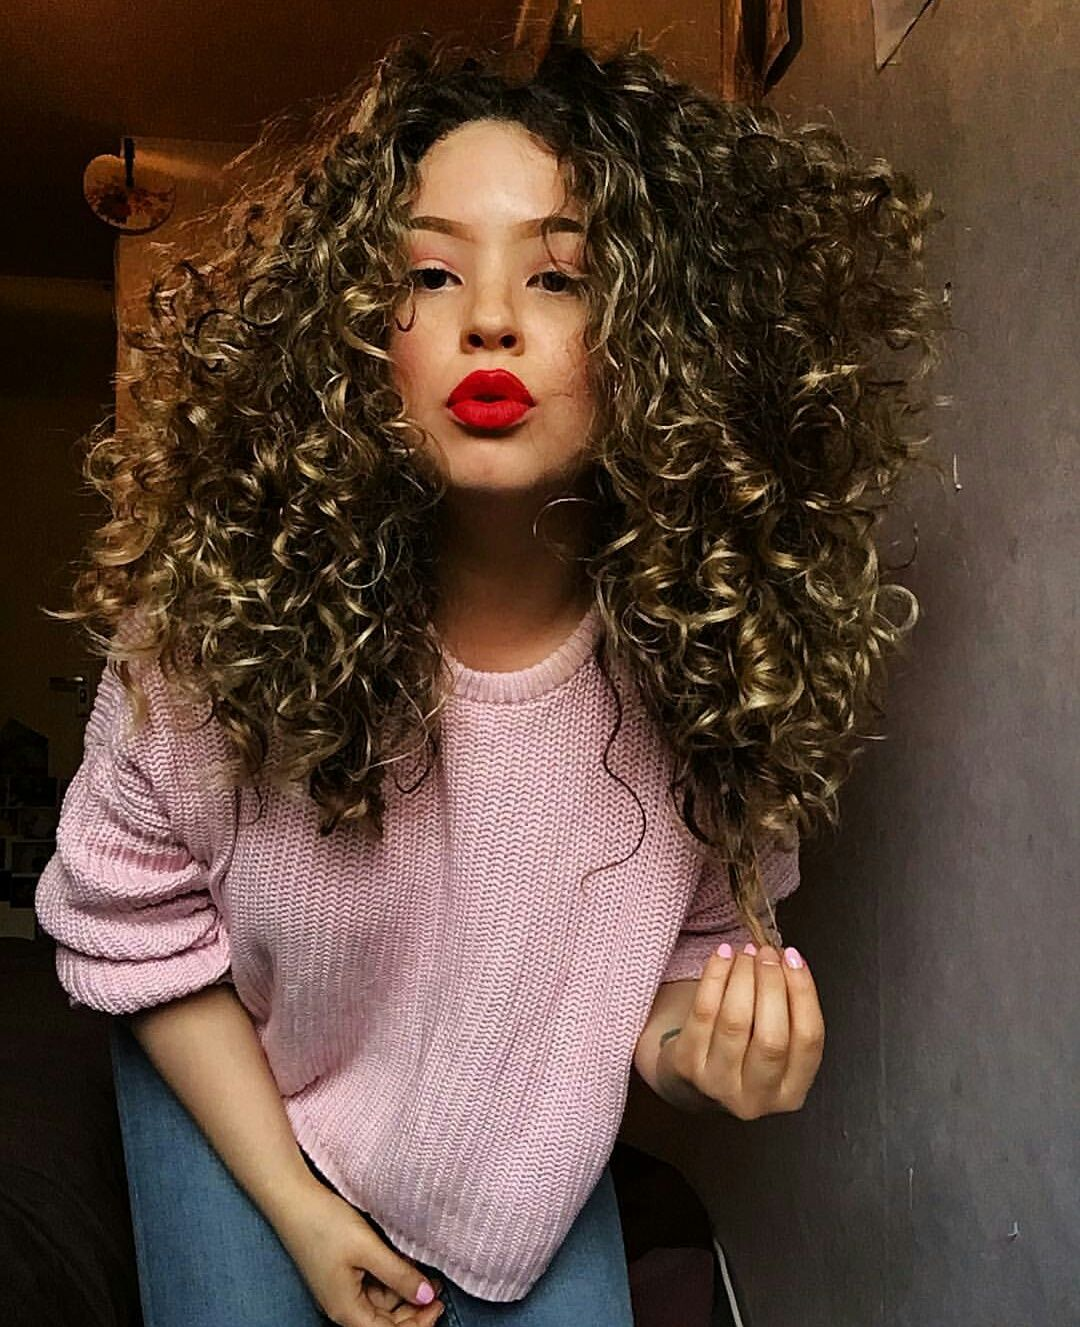 Big Naturally Very Curly Hair Long Curly Hair With Volume Curly Hair Inspo Credit Instagram Chvraa Beautiful Curly Hair Volume Hair Long Curly Hair